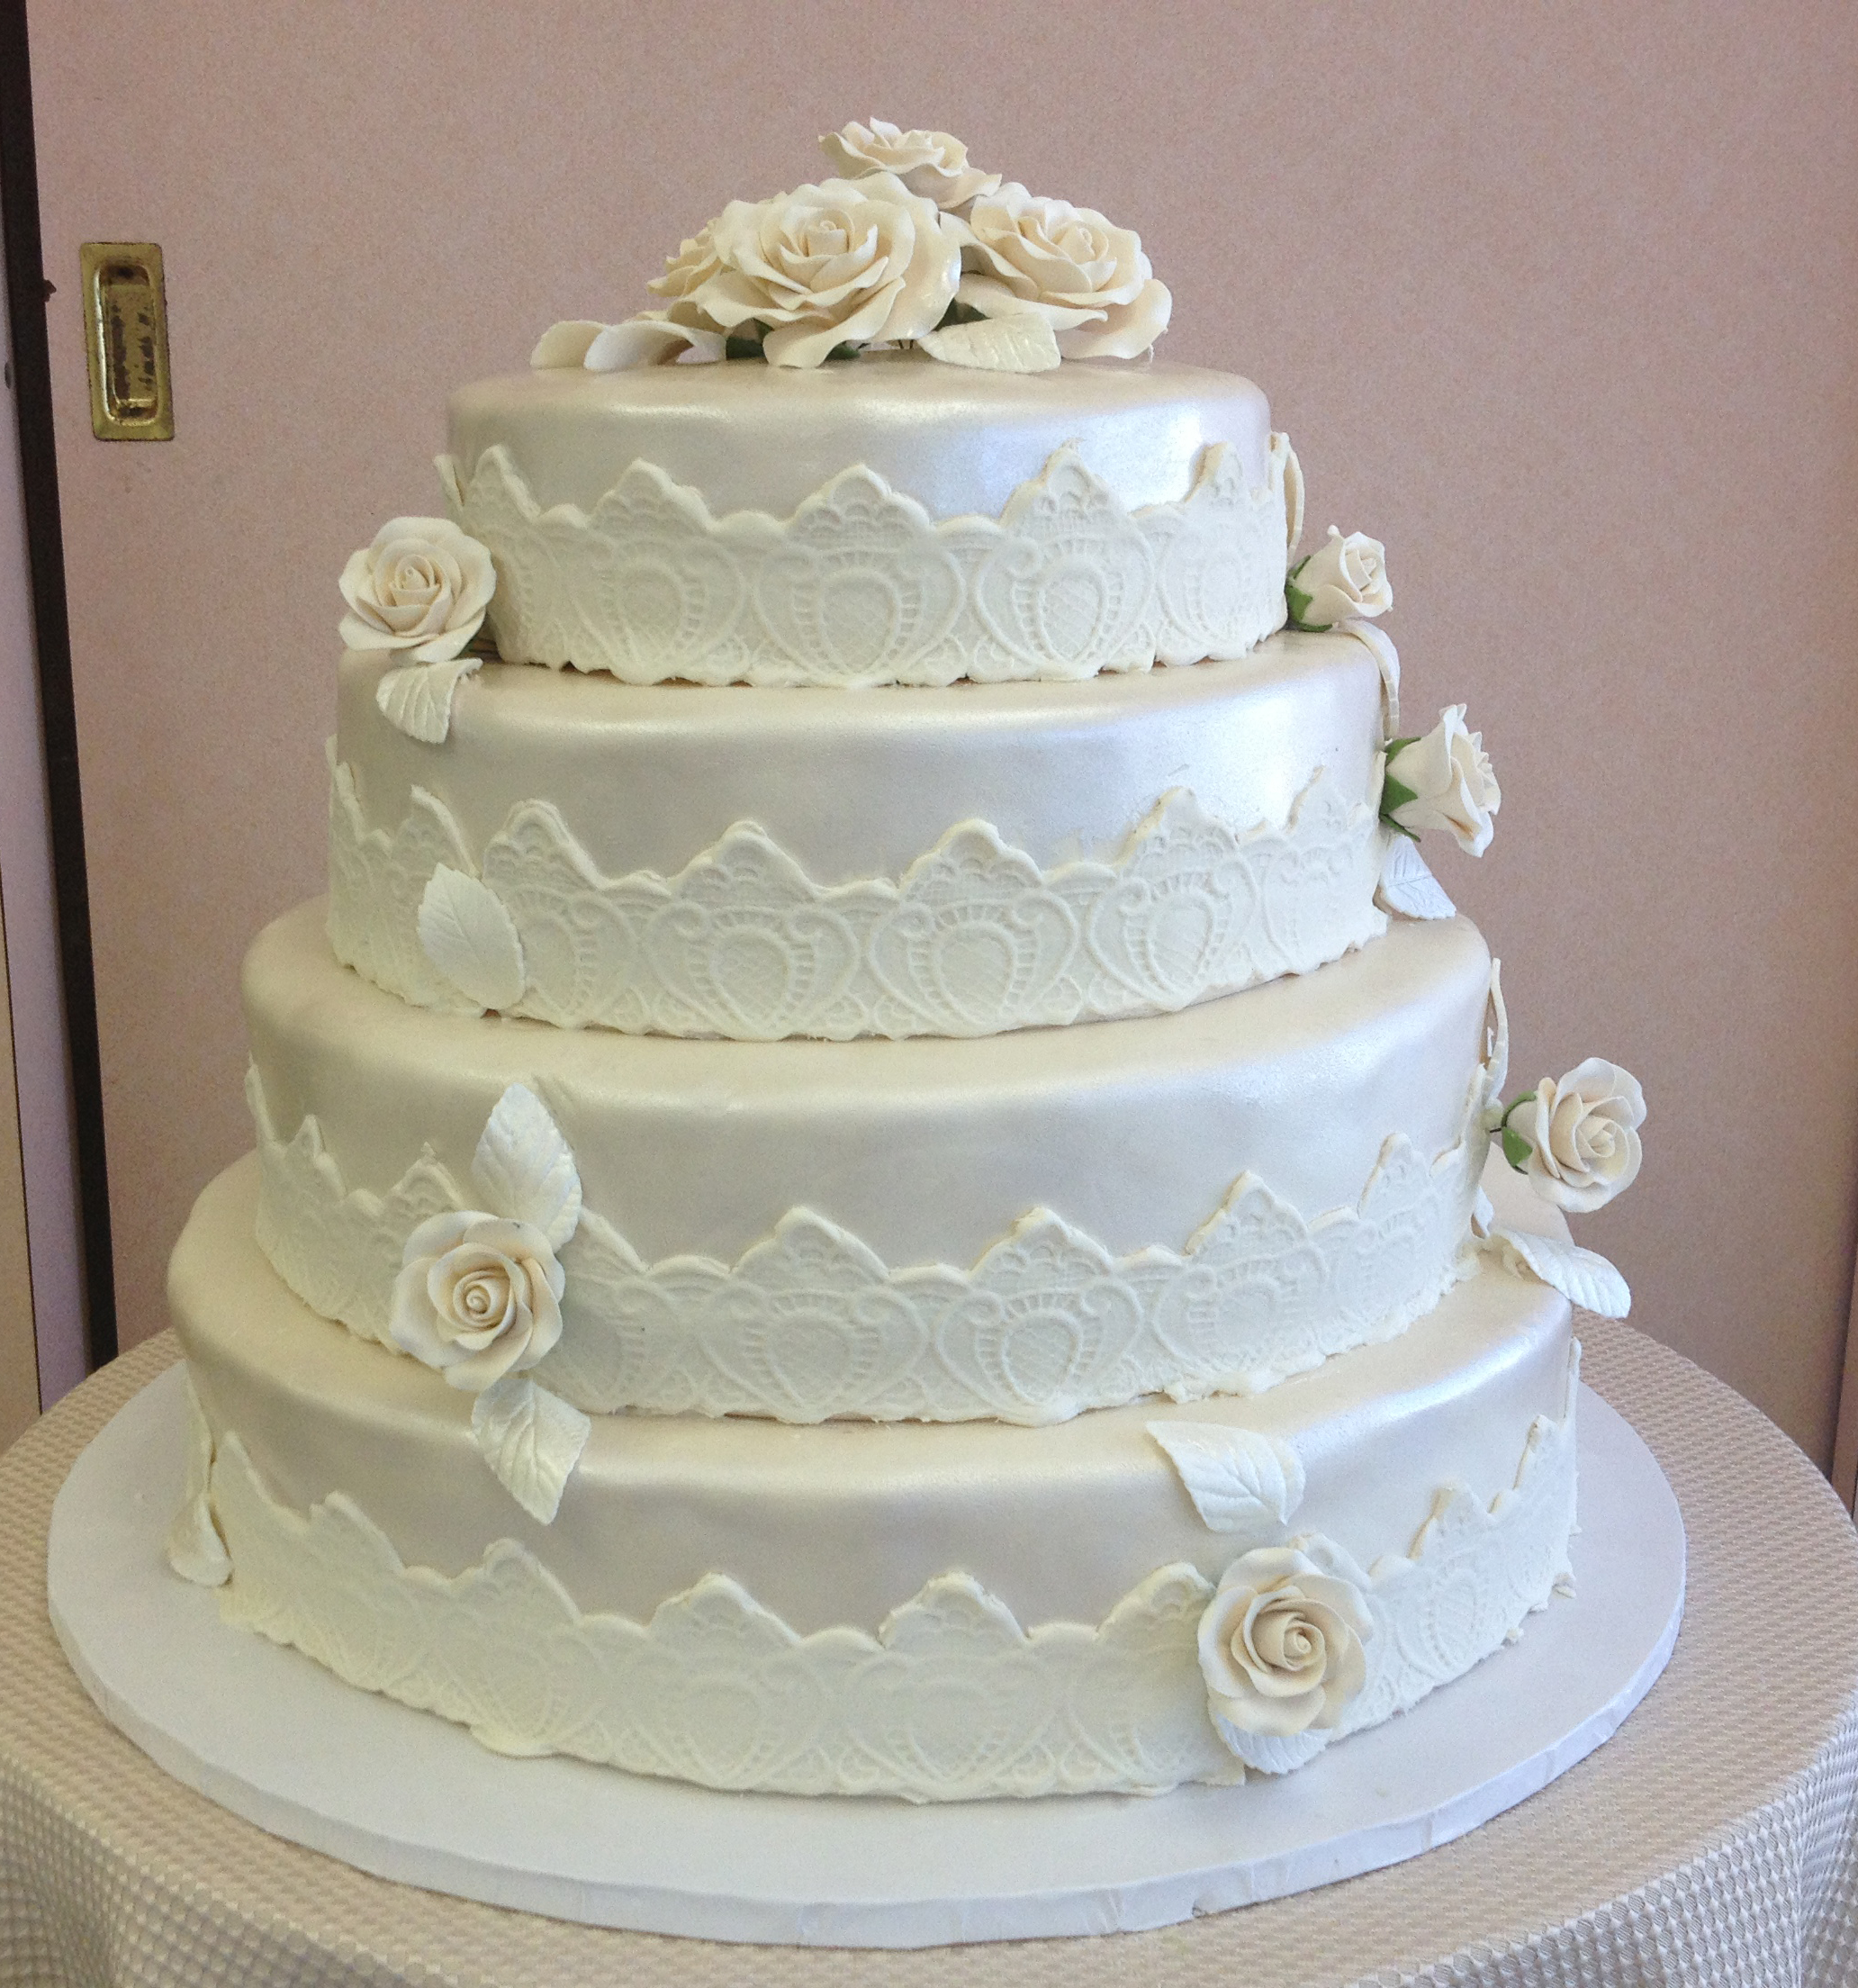 Ivory Rolled Fondant Pearlized with White Rolled Fondant Banding. Rolled Fondant Leaves & Roses